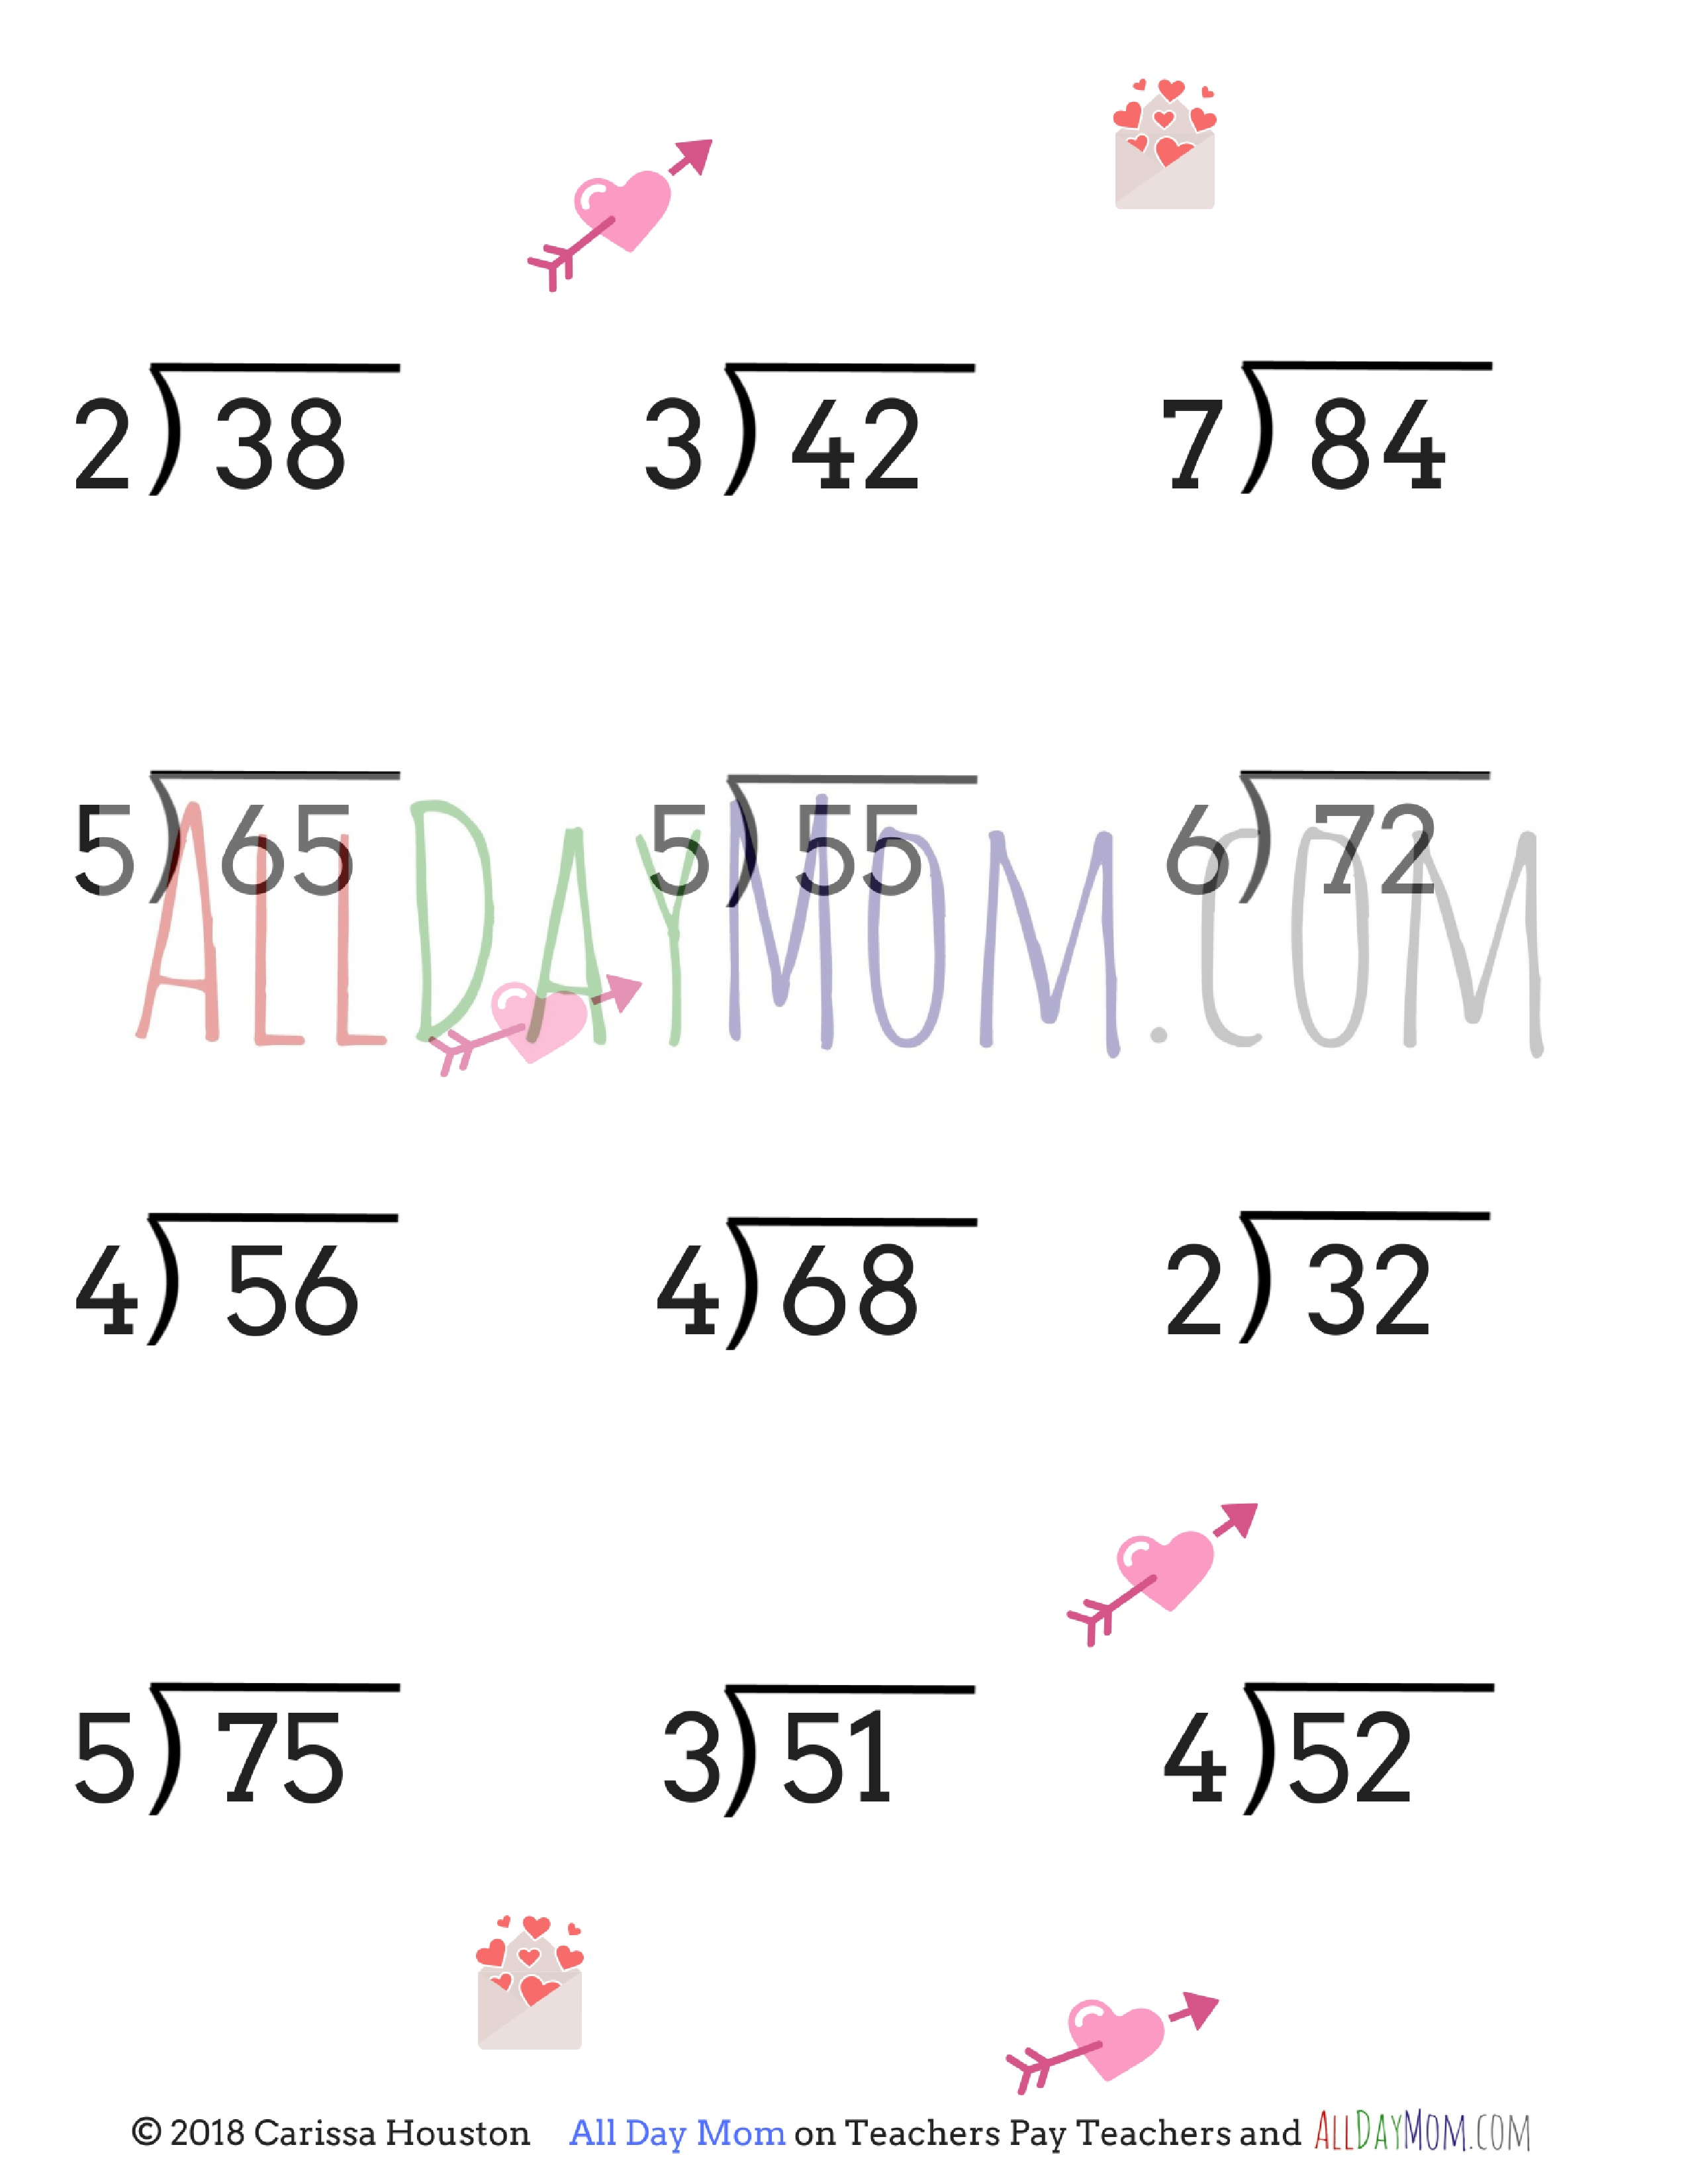 image about Free Printable Valentine Worksheets titled Totally free printable Valentines Working day math worksheets!